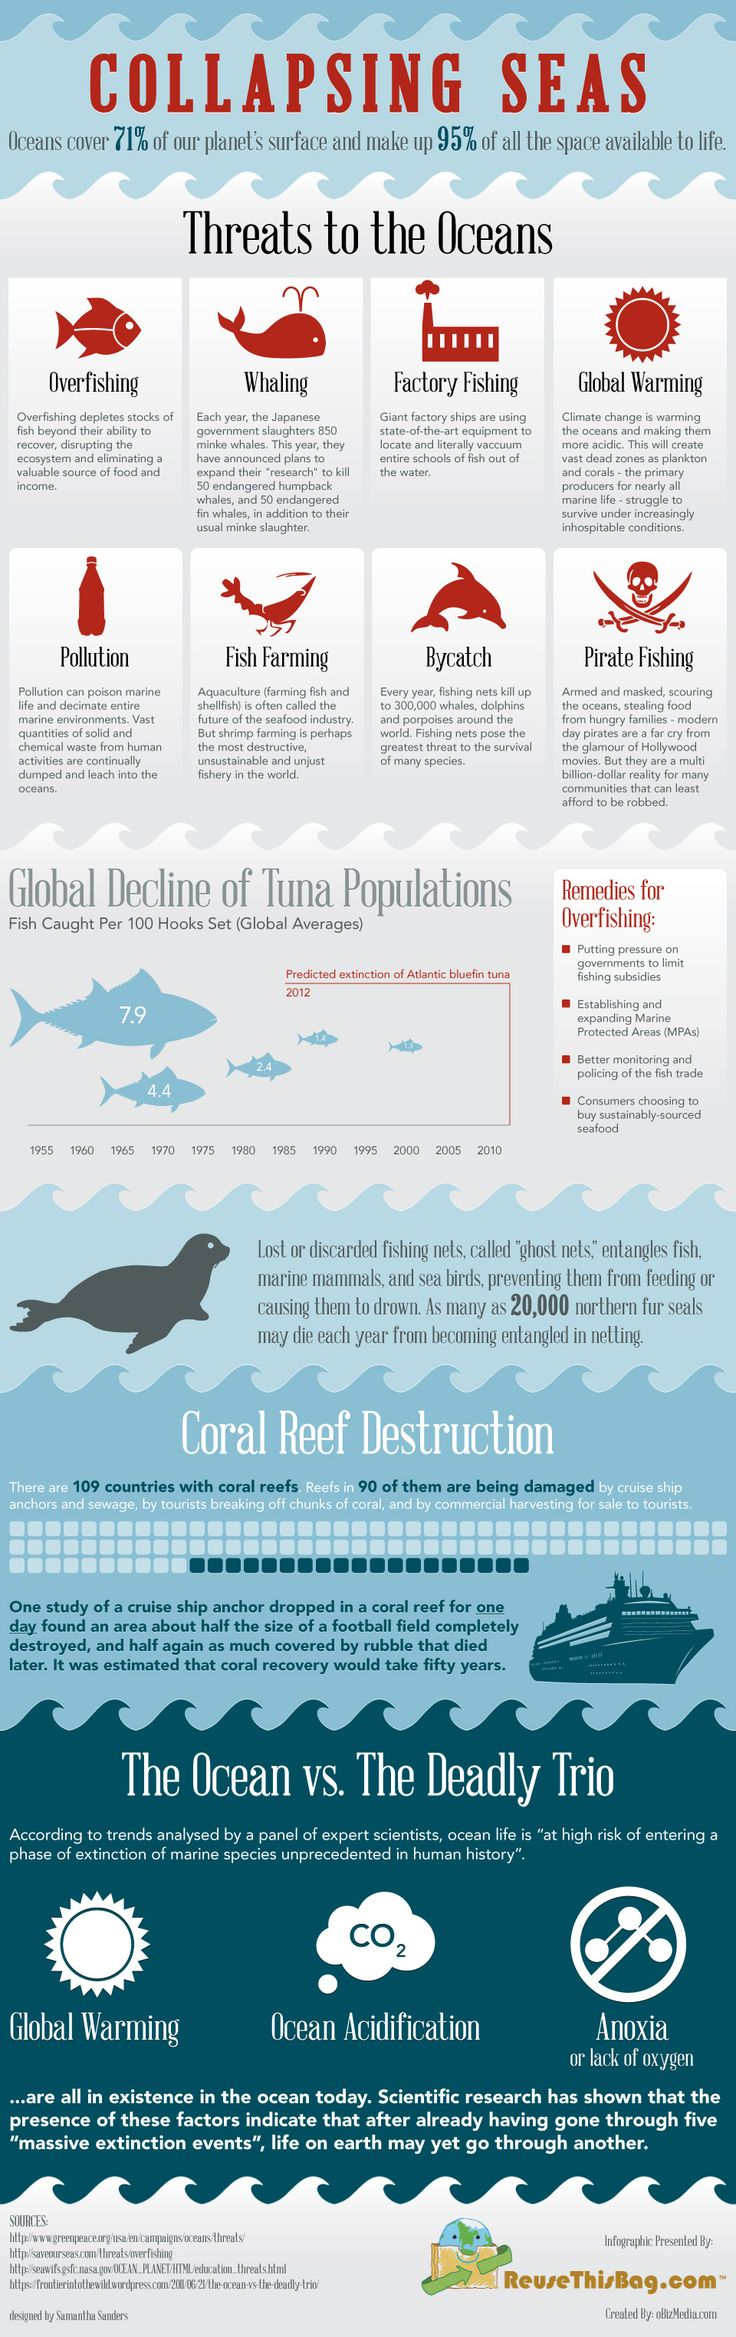 Why our seas are collapsing? #Infographic Our oceans are threatened every day. Here's a look at the biggest problems and what we can do about them.